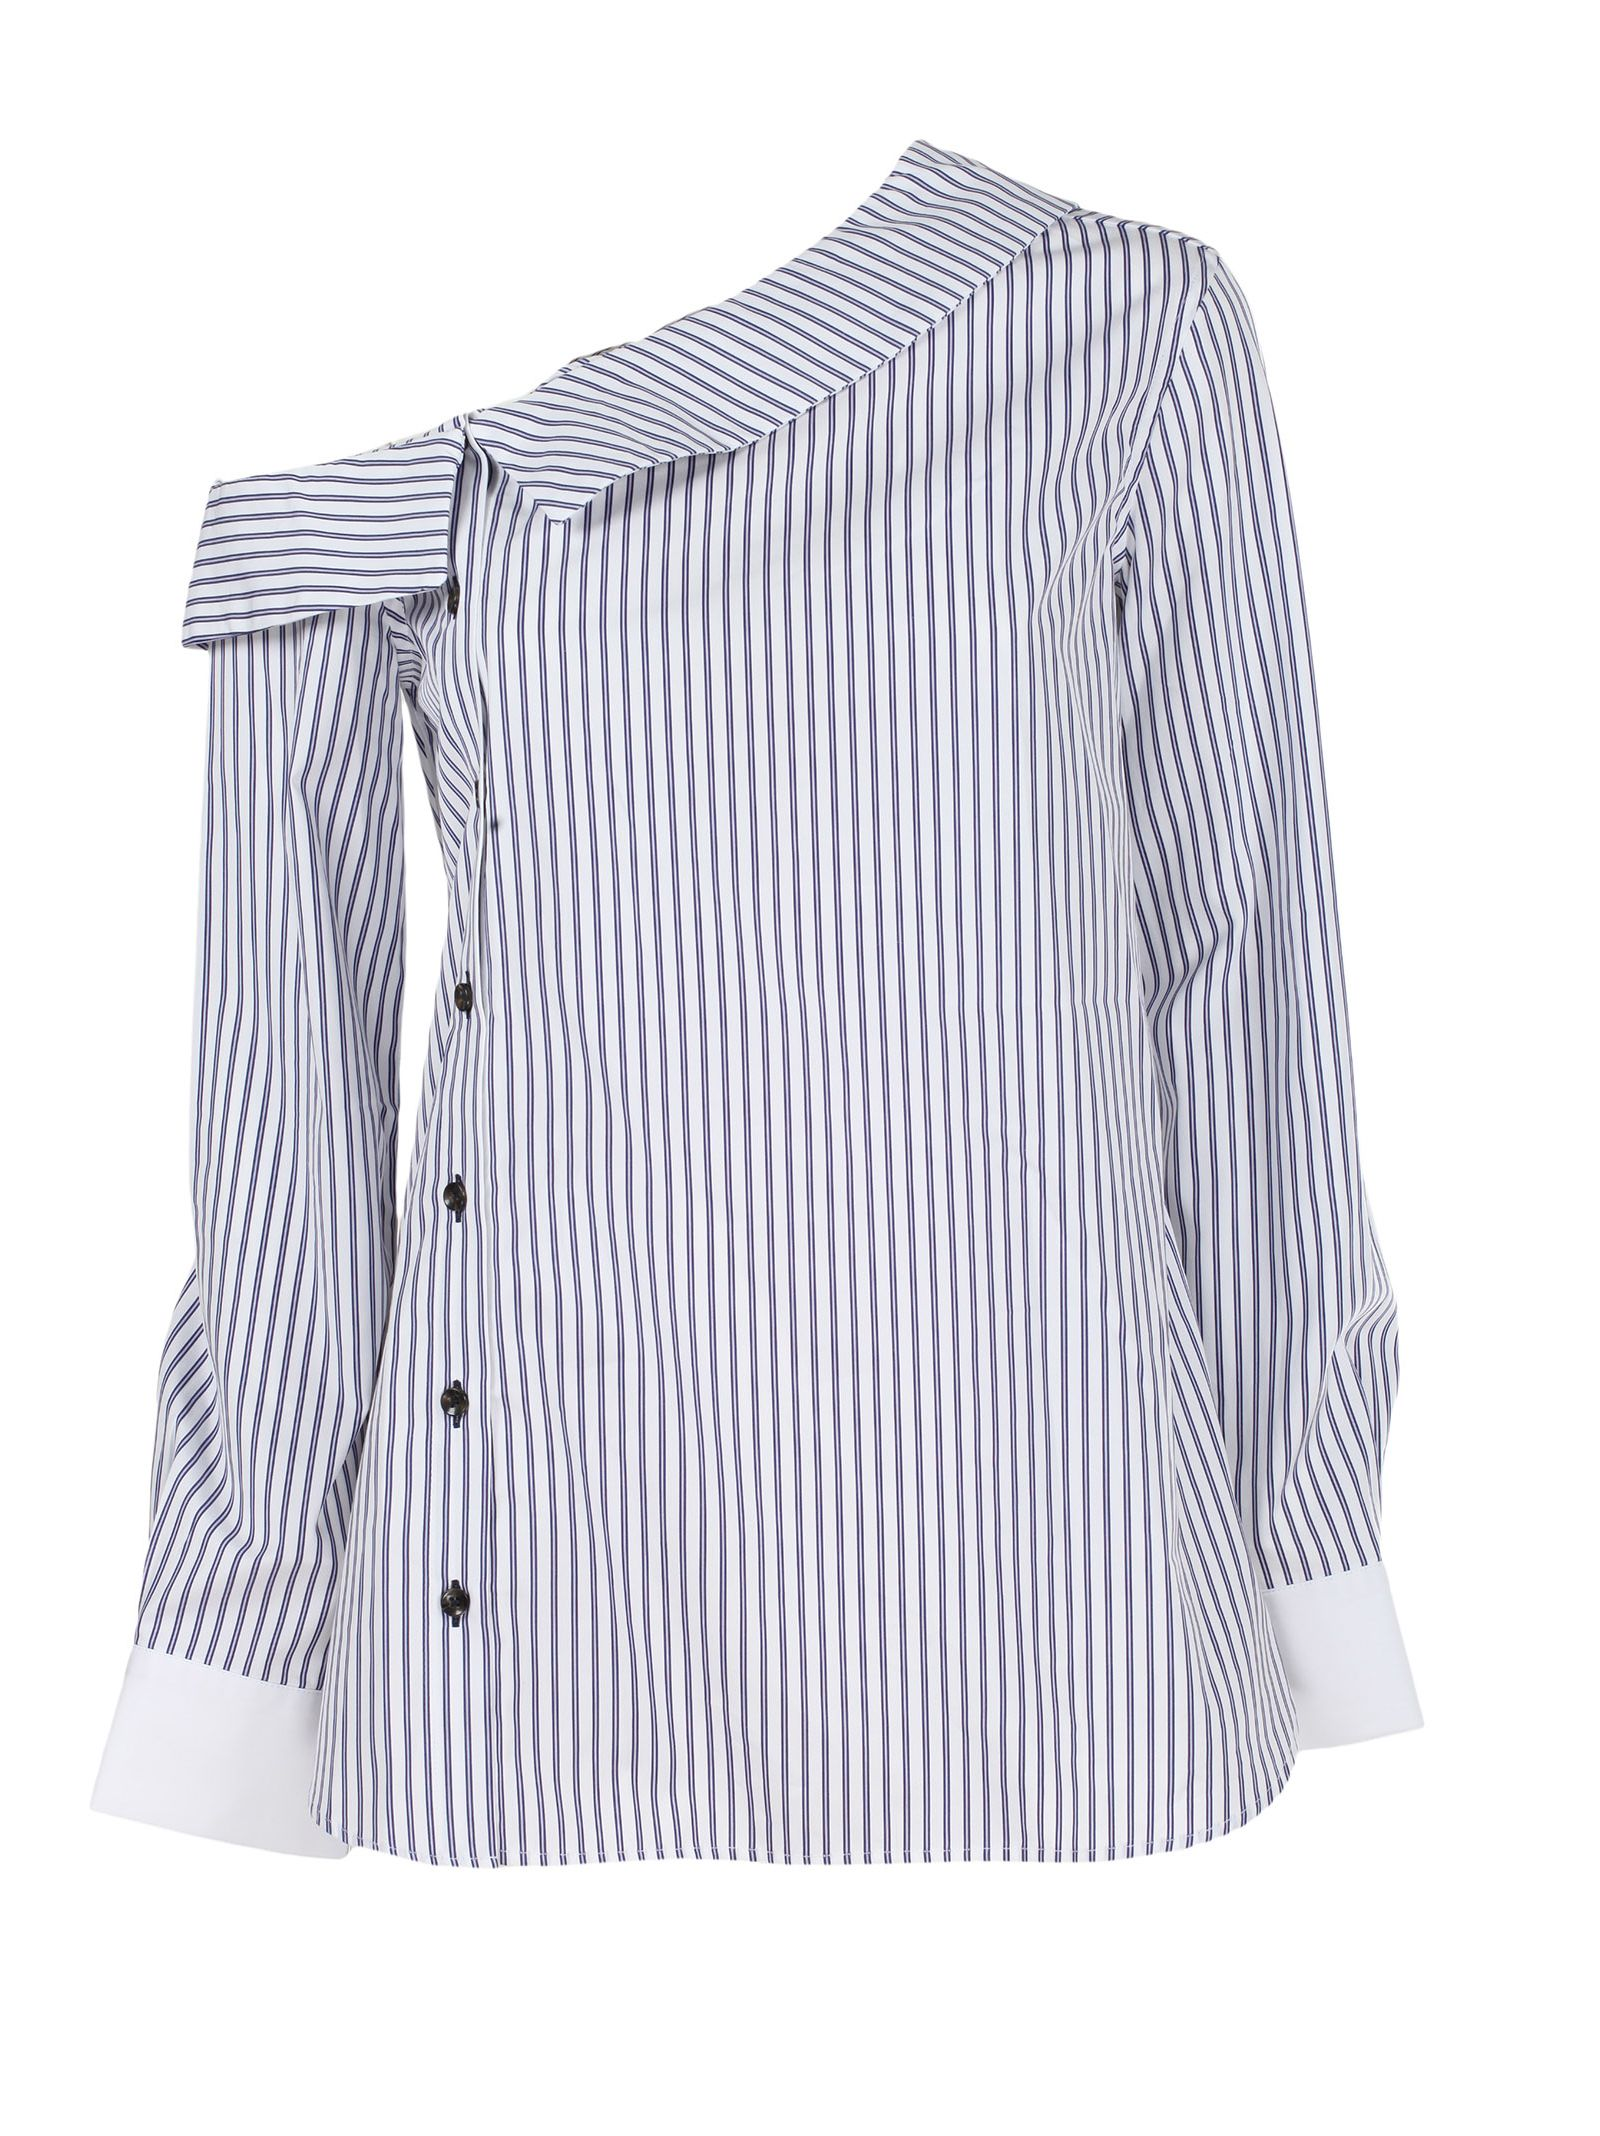 MONOGRAPHIE One Shoulder Shirt in Blue & White Stripes